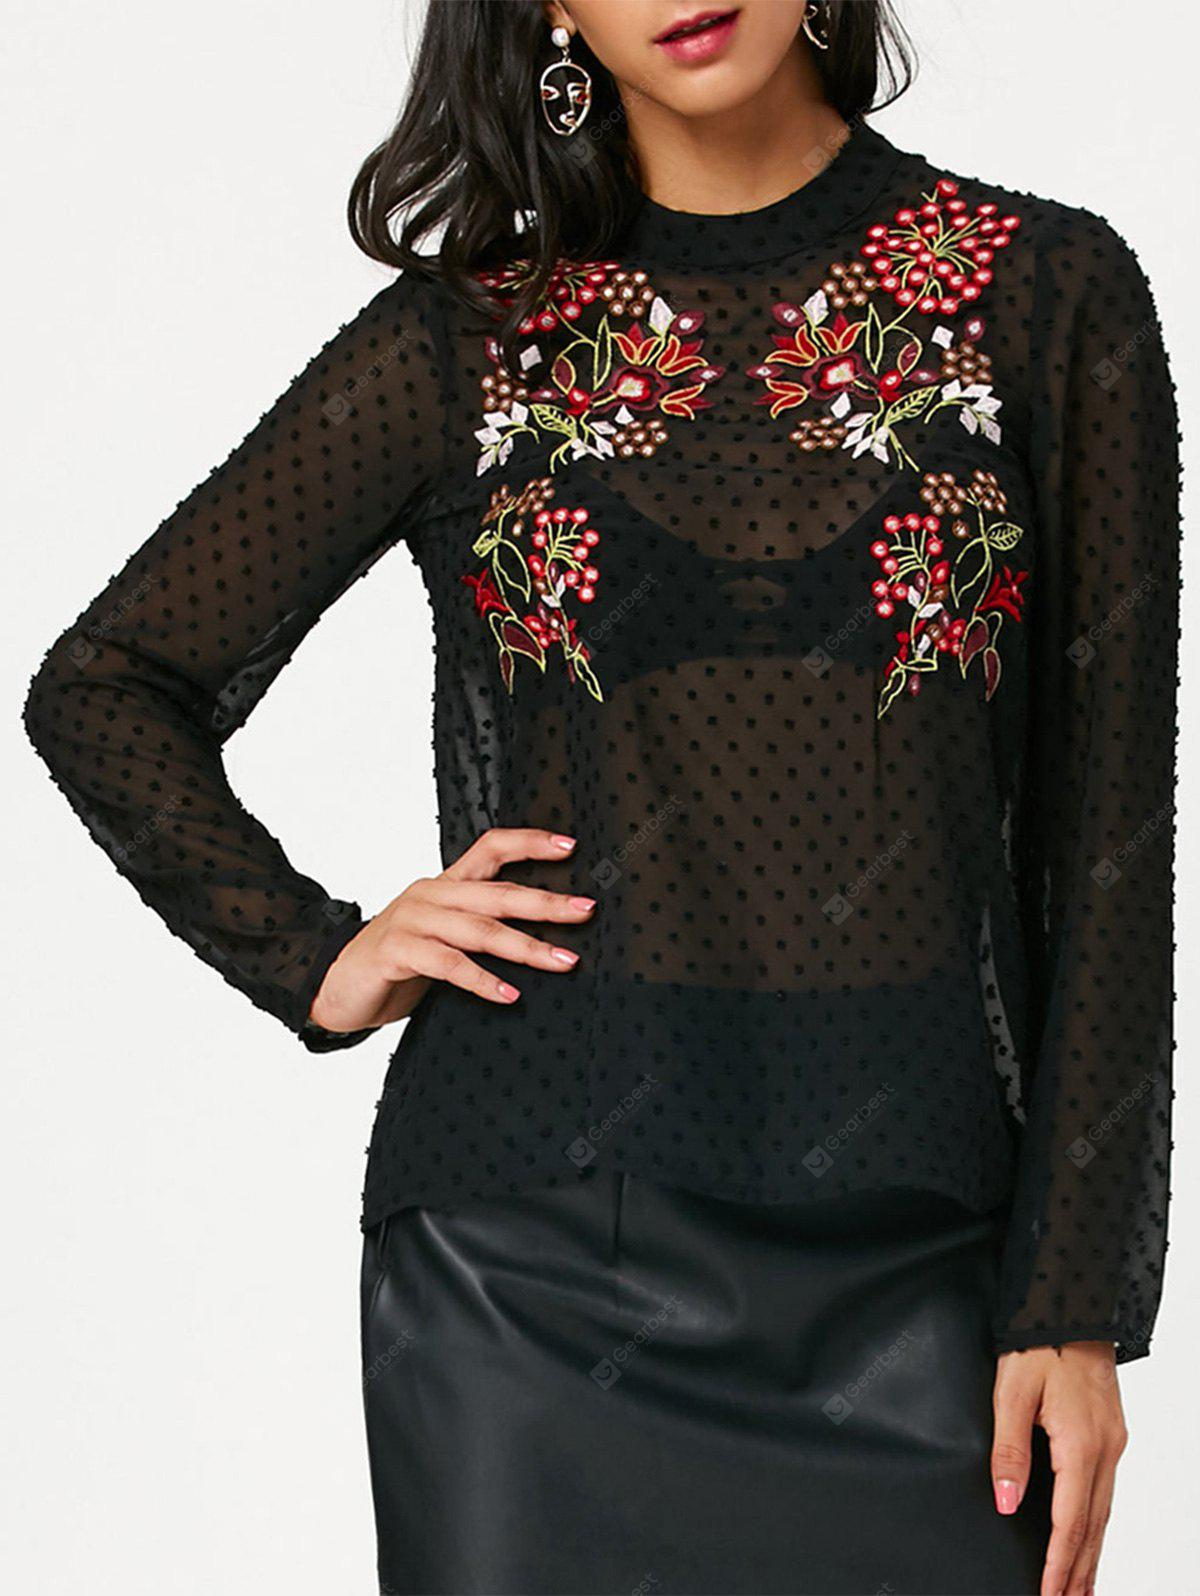 BLACK S Long Sleeve Embroidered Semi Sheer Chiffon Blouse